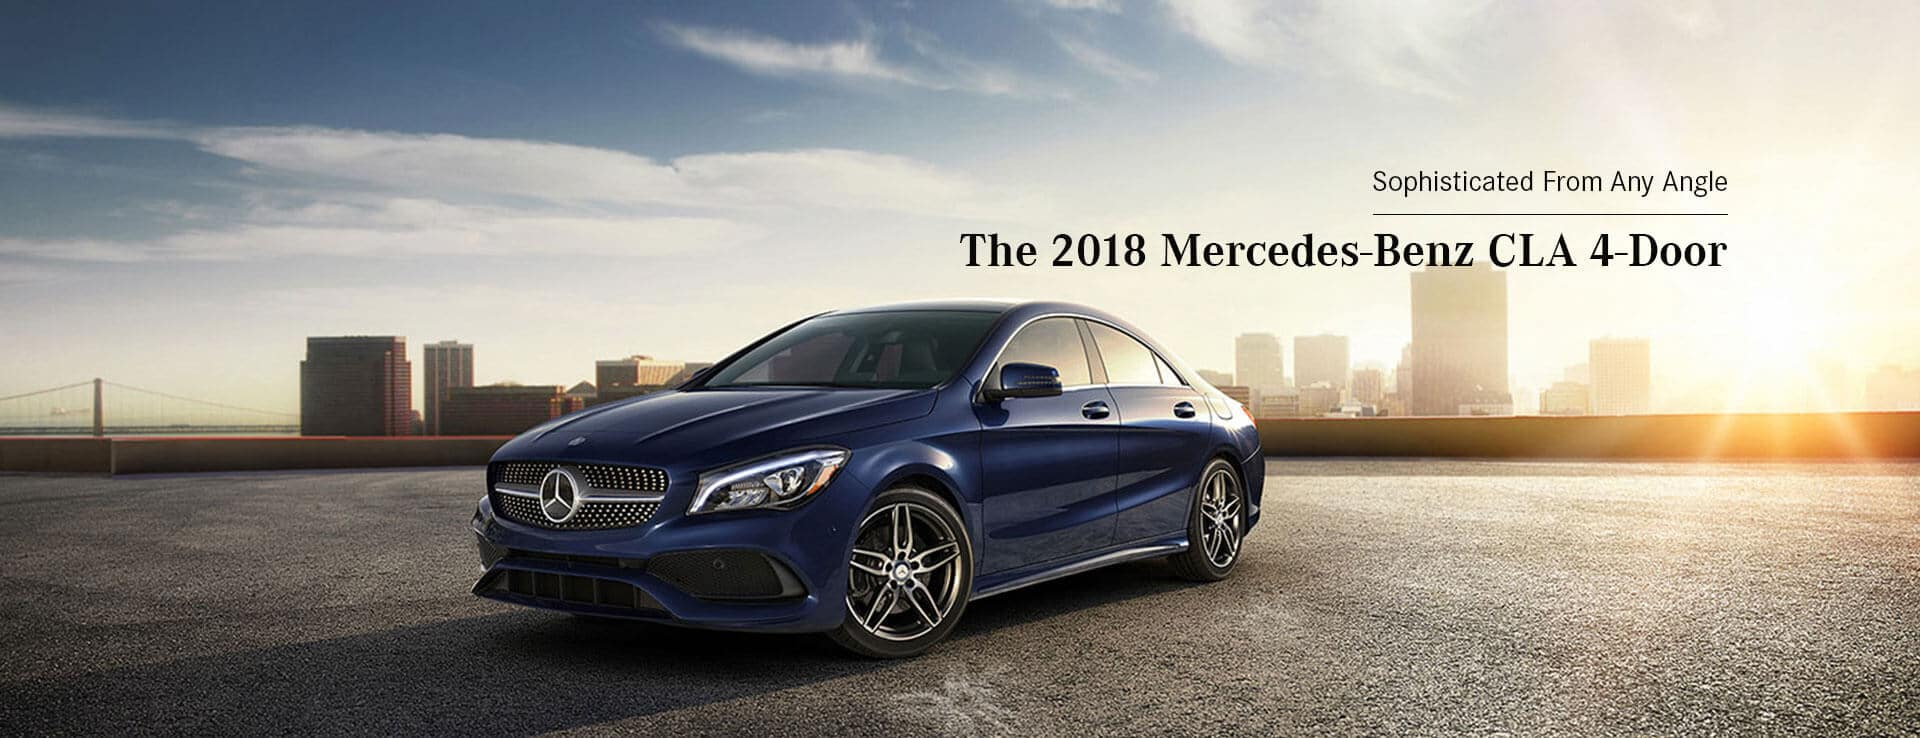 The 2018 Mercedes-Benz CLA Hero